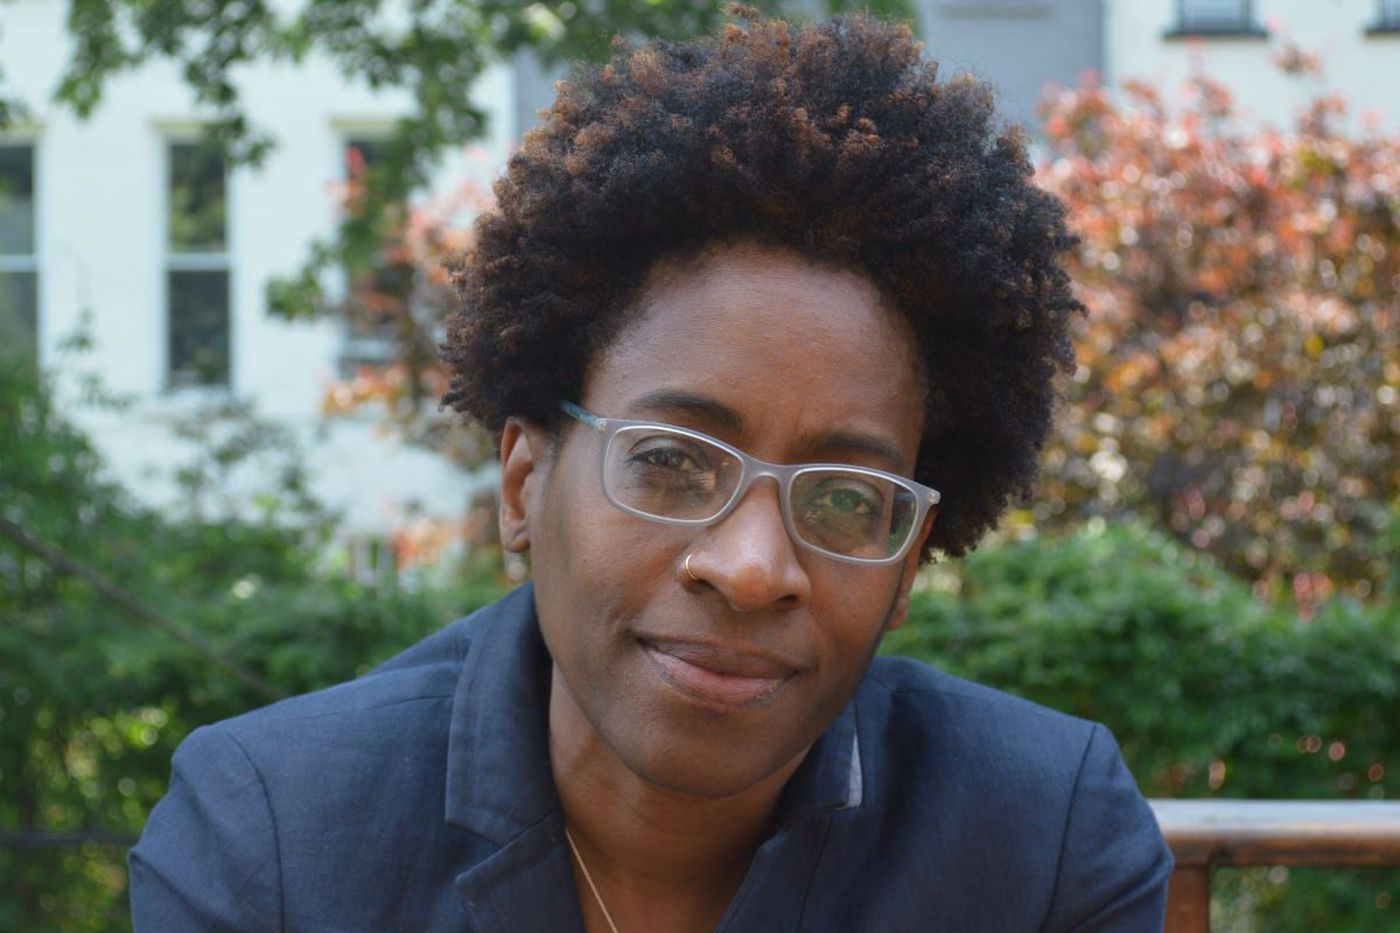 One Book, One Philadelphia author Jacqueline Woodson is keen to meet you, Philly